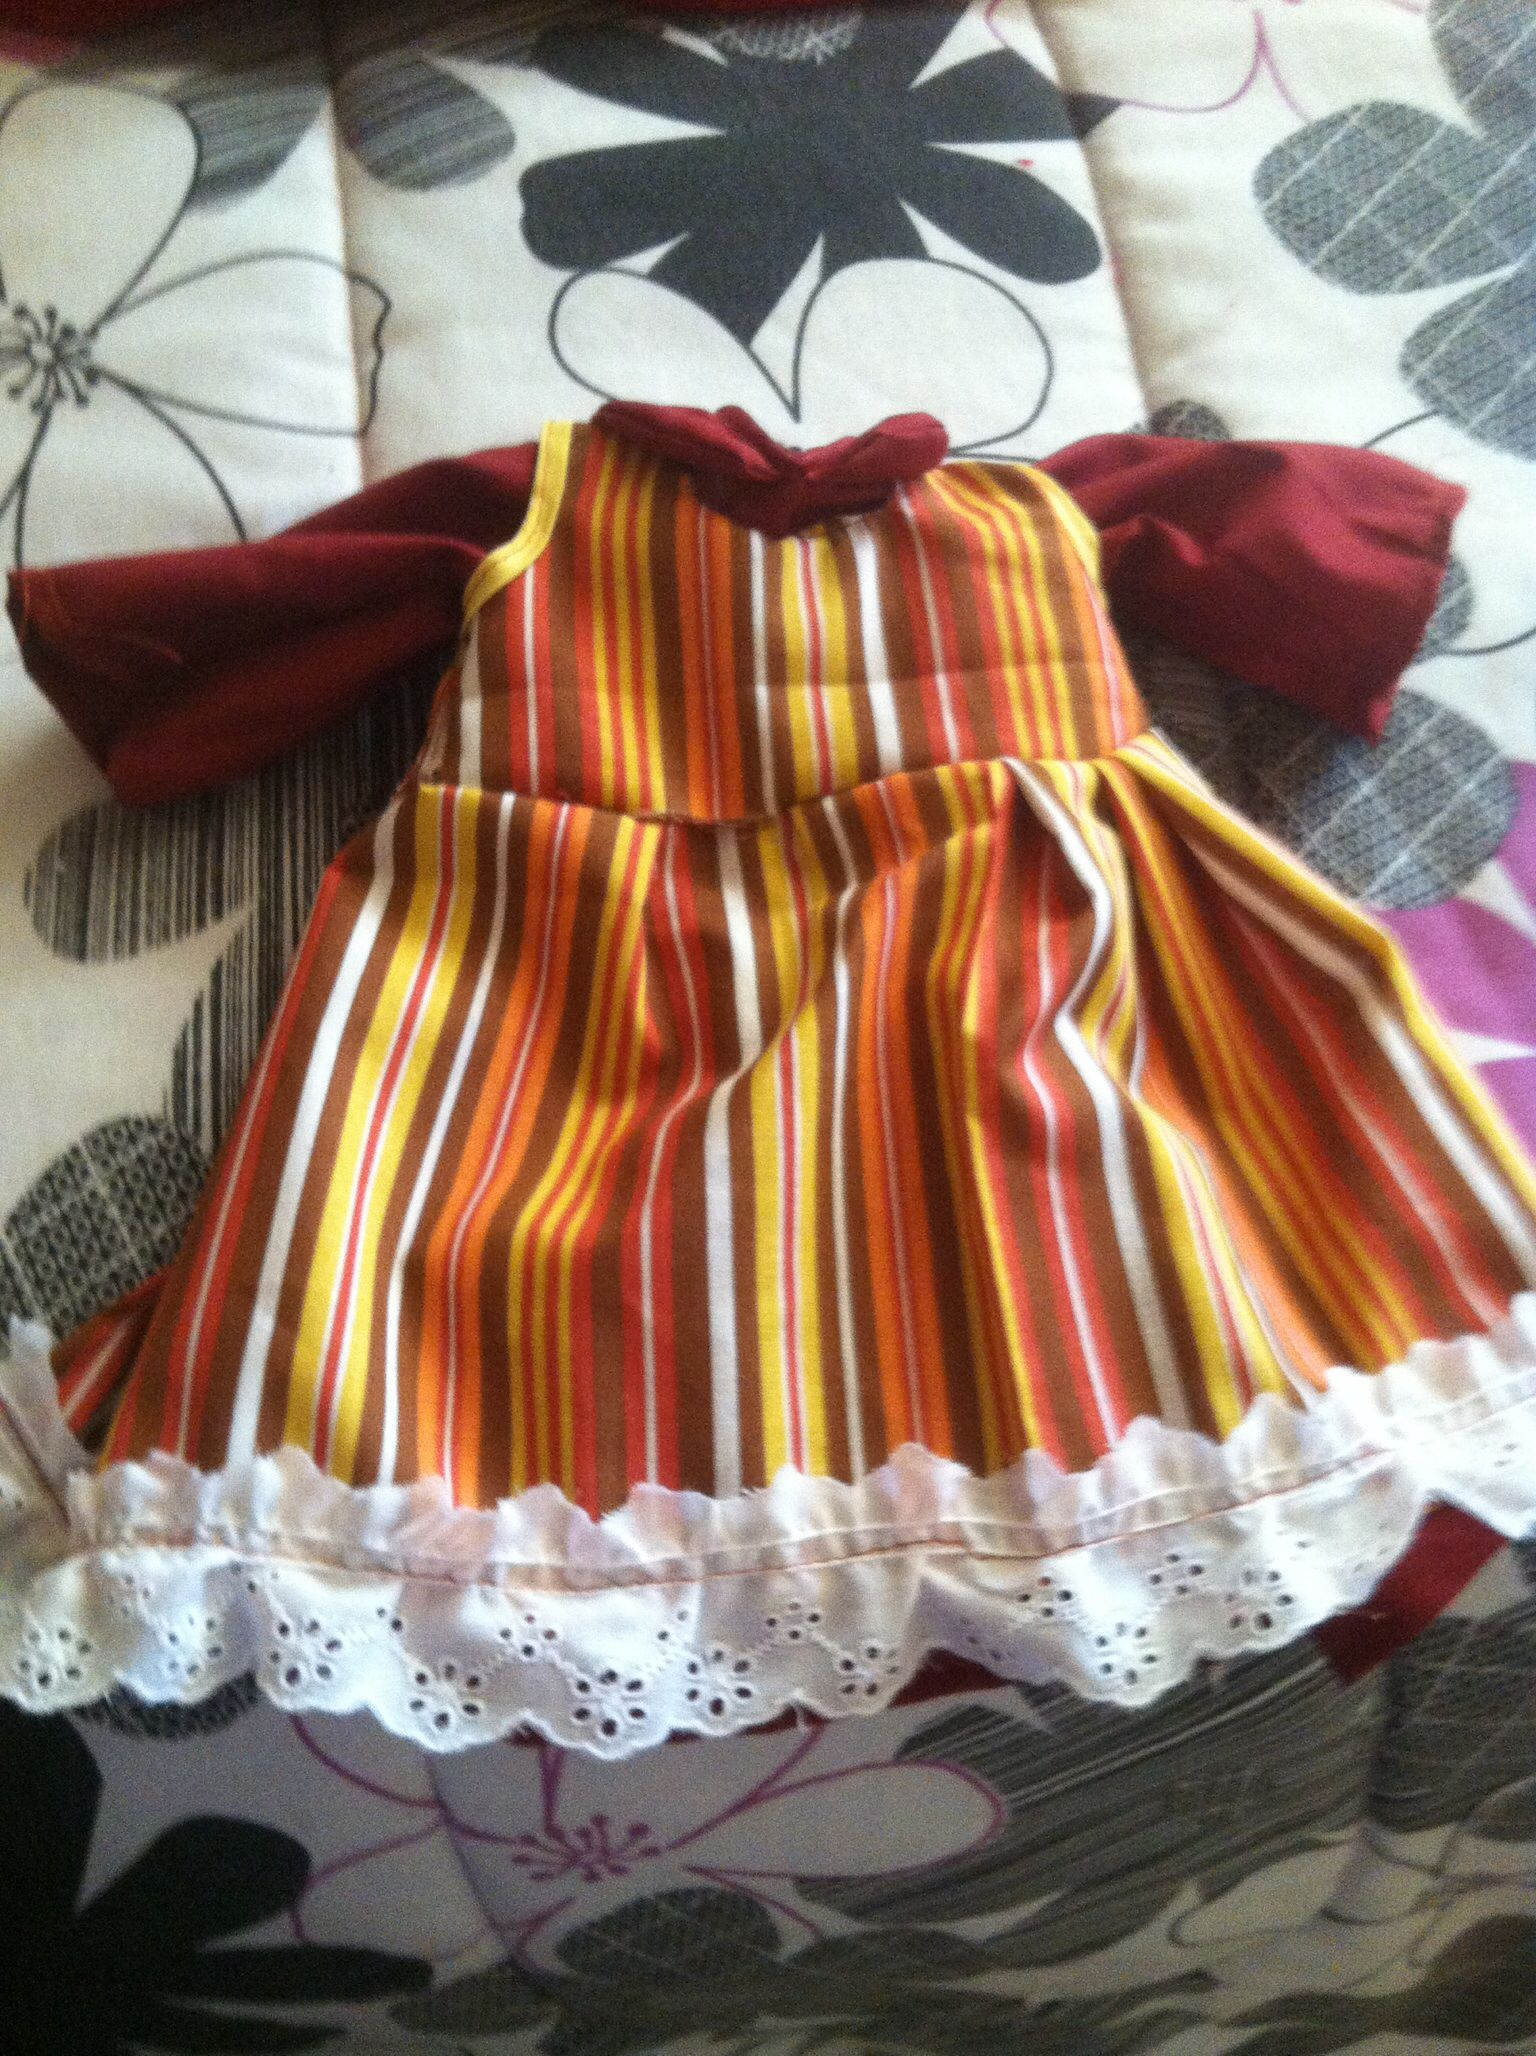 Hand made outfit for 18 inch doll $7.00 shipped to US only paypal only